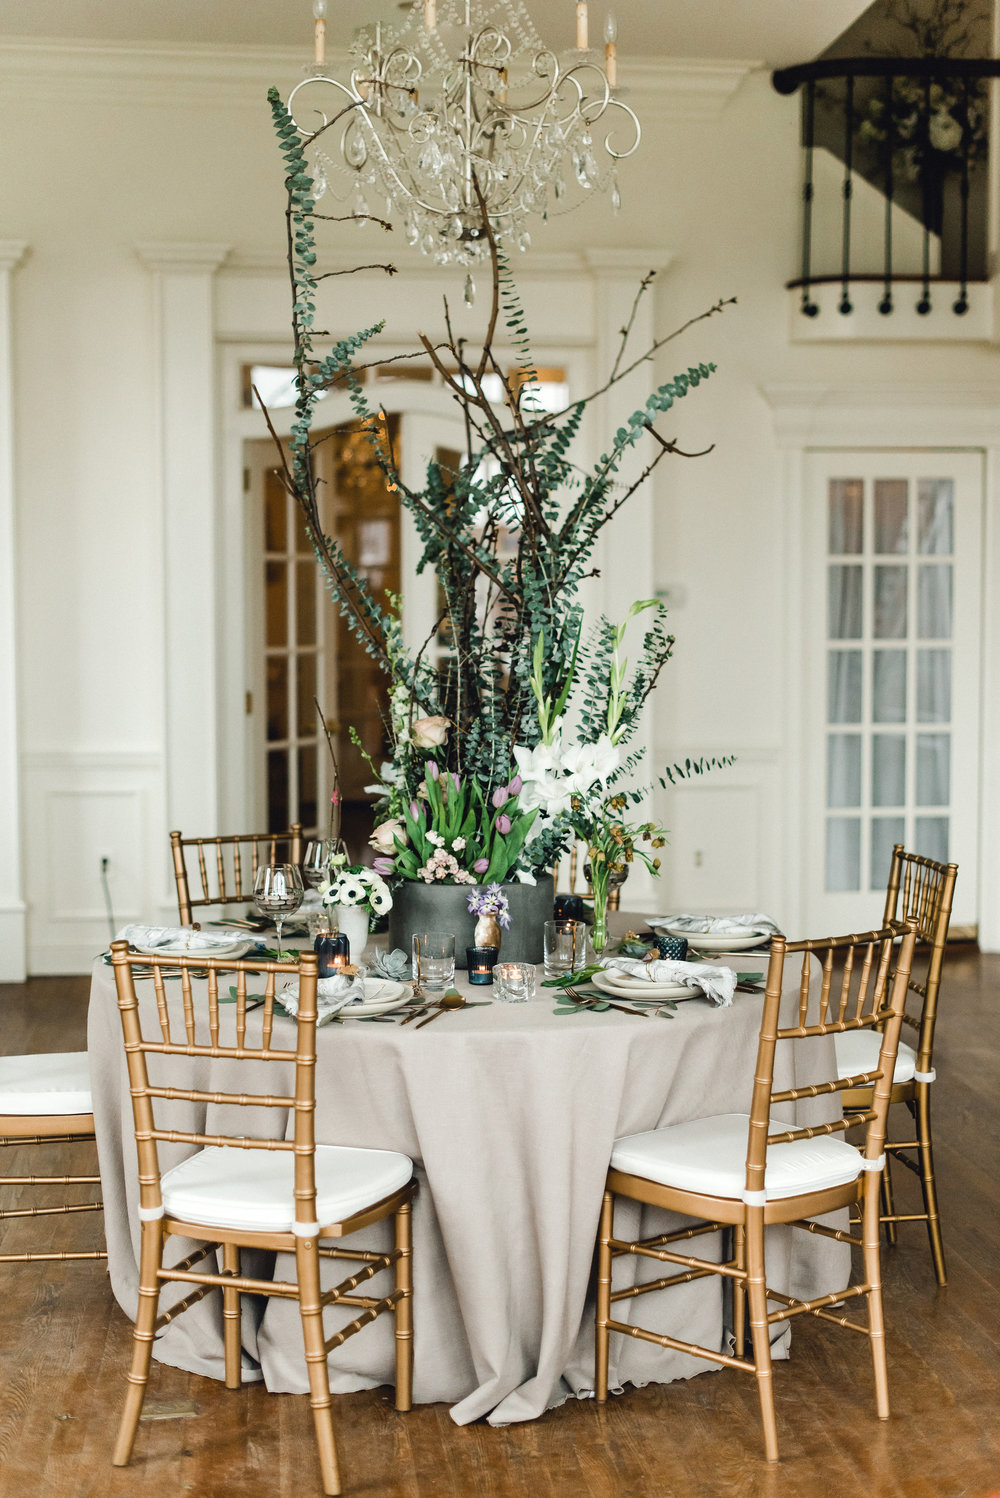 Tall, organic, unstructured wedding centerpieces for Pablo Neruda enchanting garden styled shoot planned by Exhale Events. Get inspired at exhale-events.com!